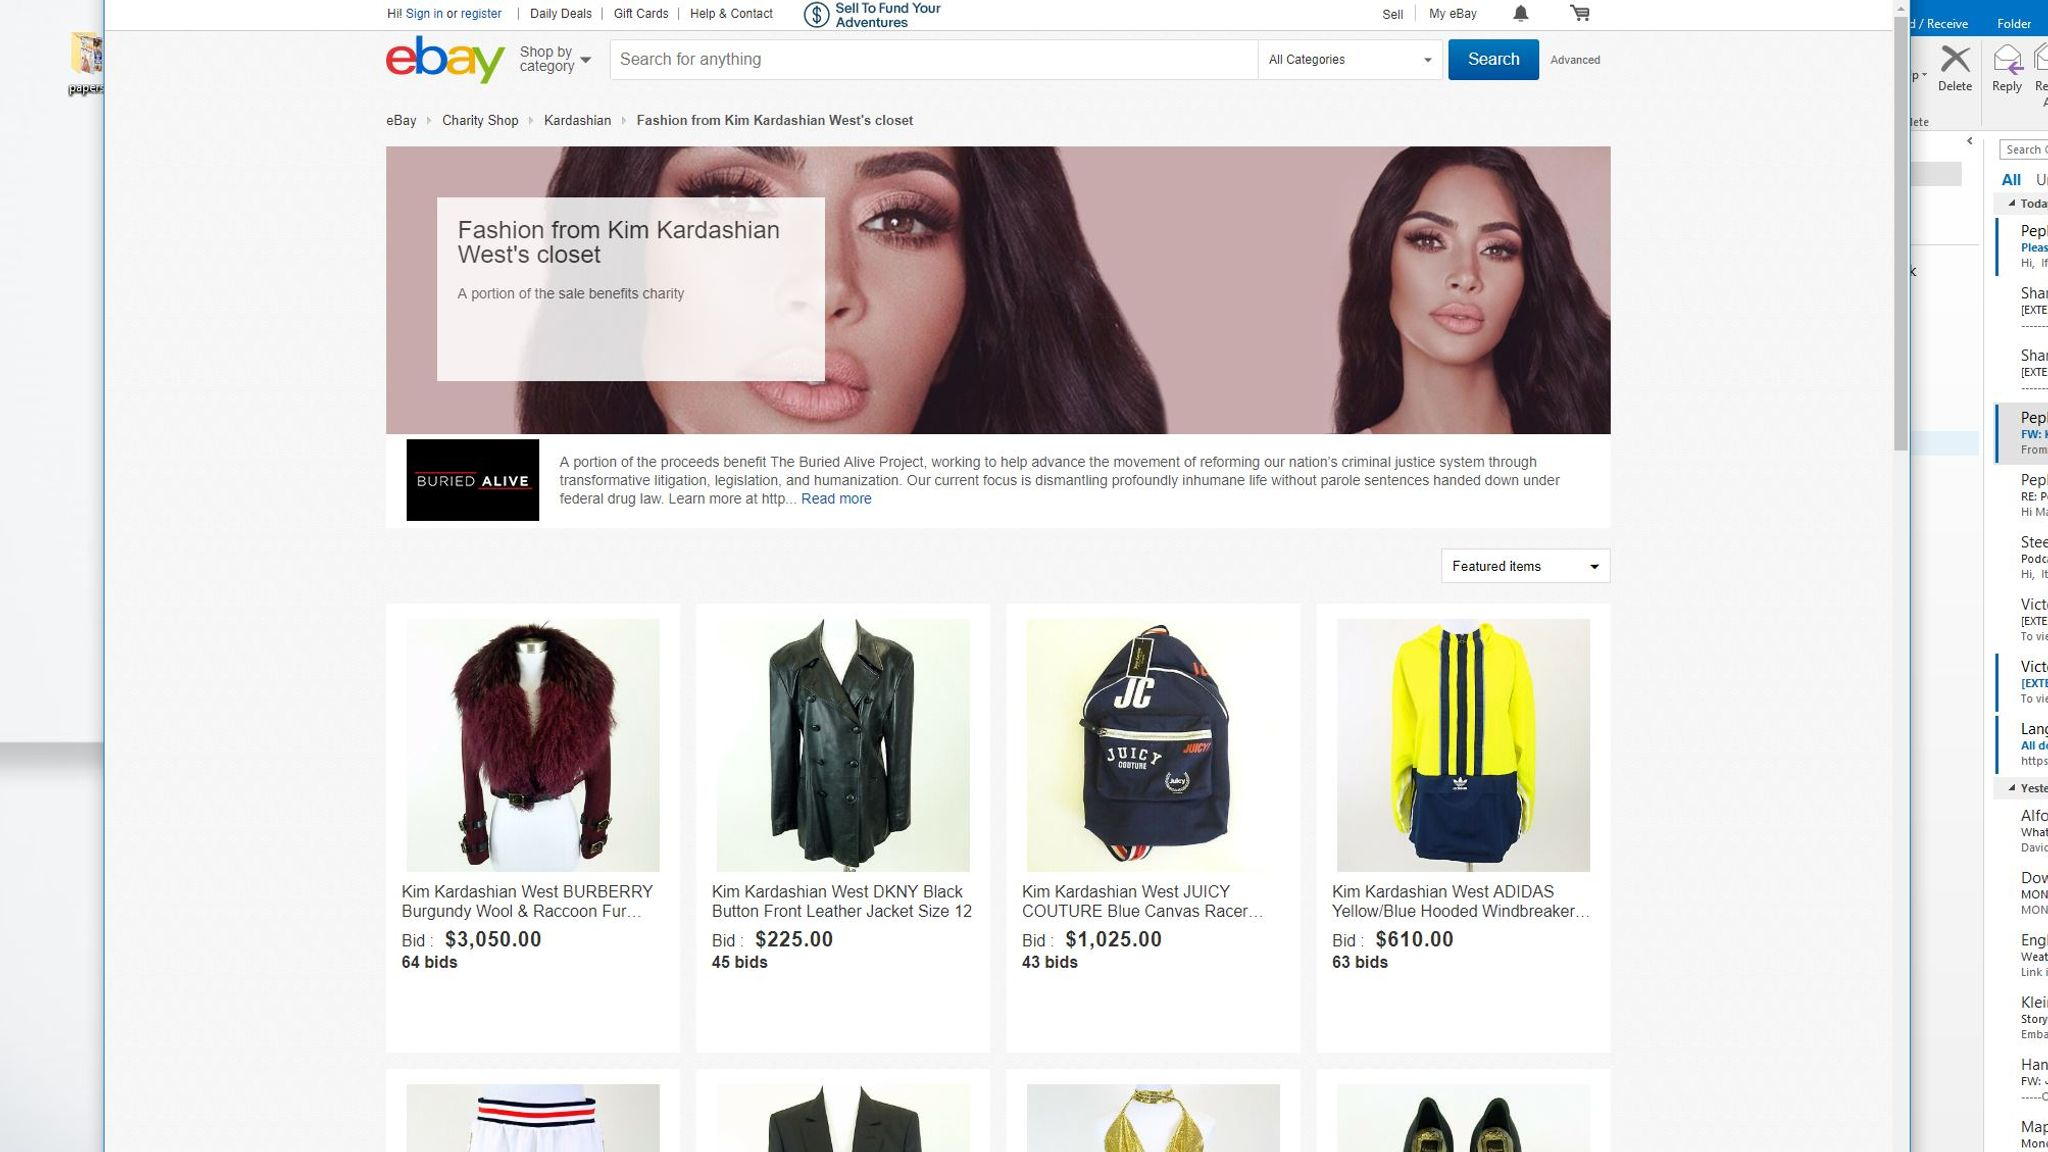 Kim Kardashian West Sells Clothes On Ebay For Justice Project Ents Arts News Sky News